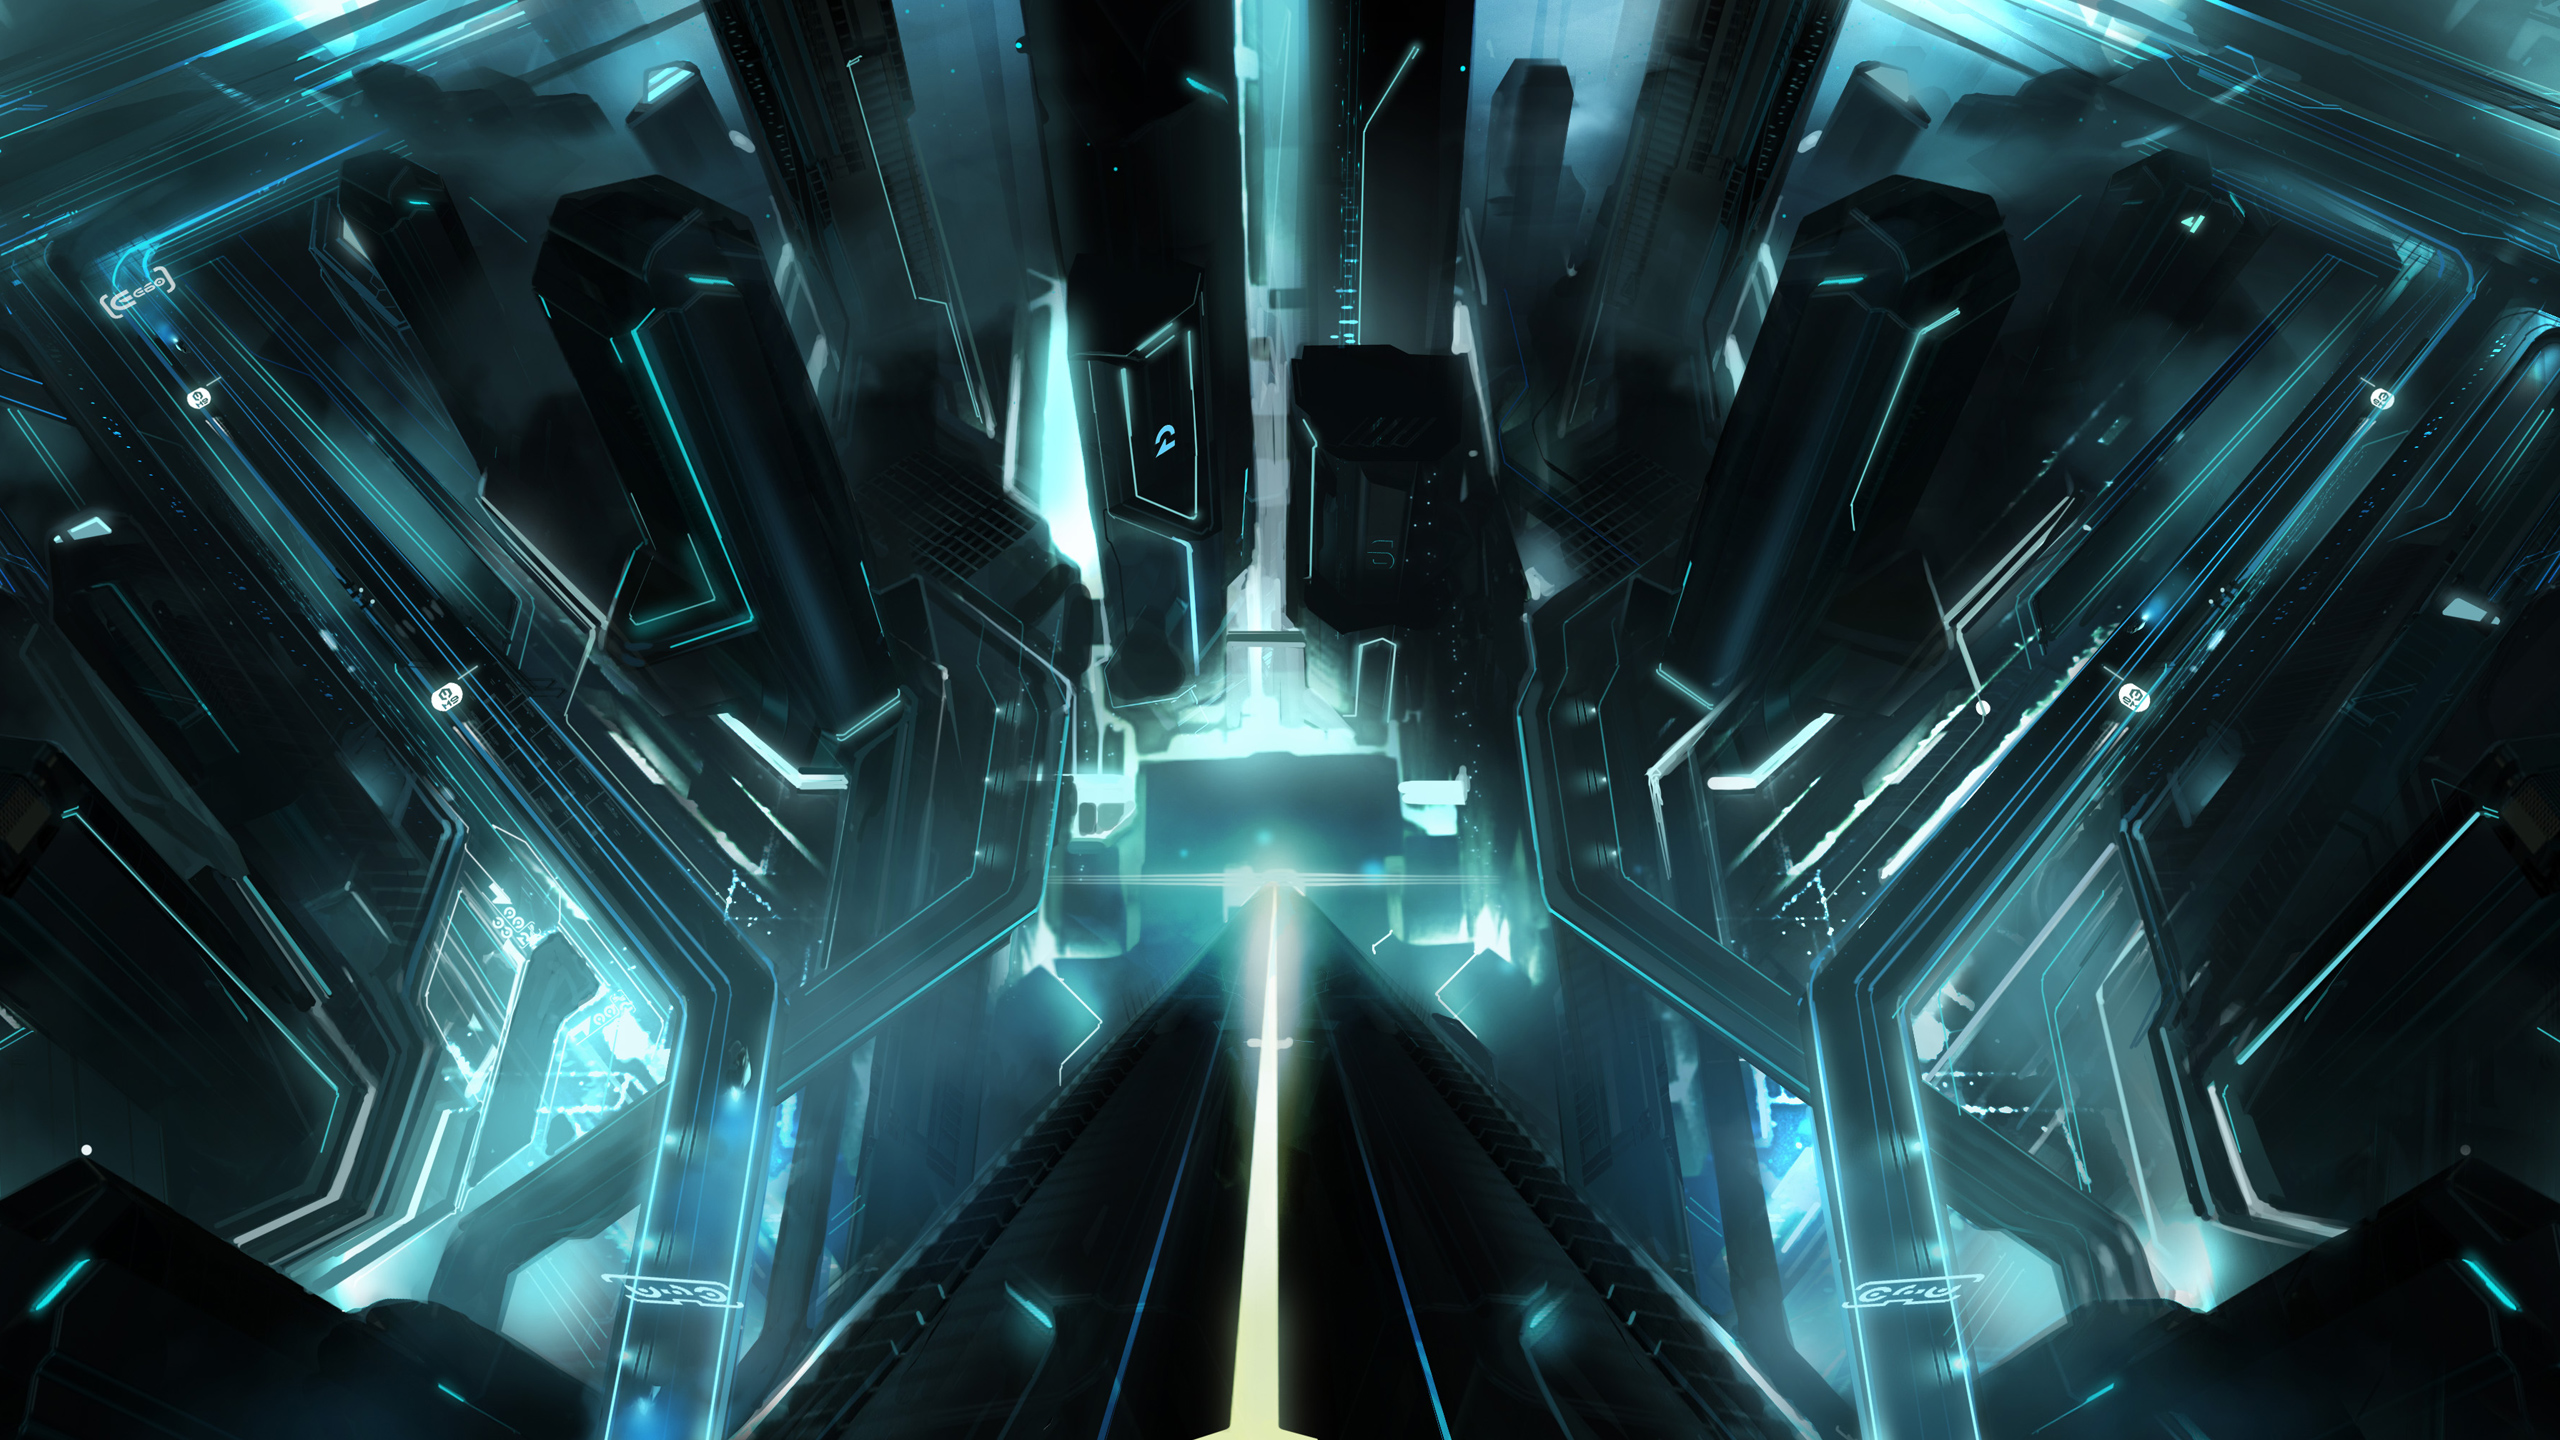 tron city wallpapers | wallpapers hd